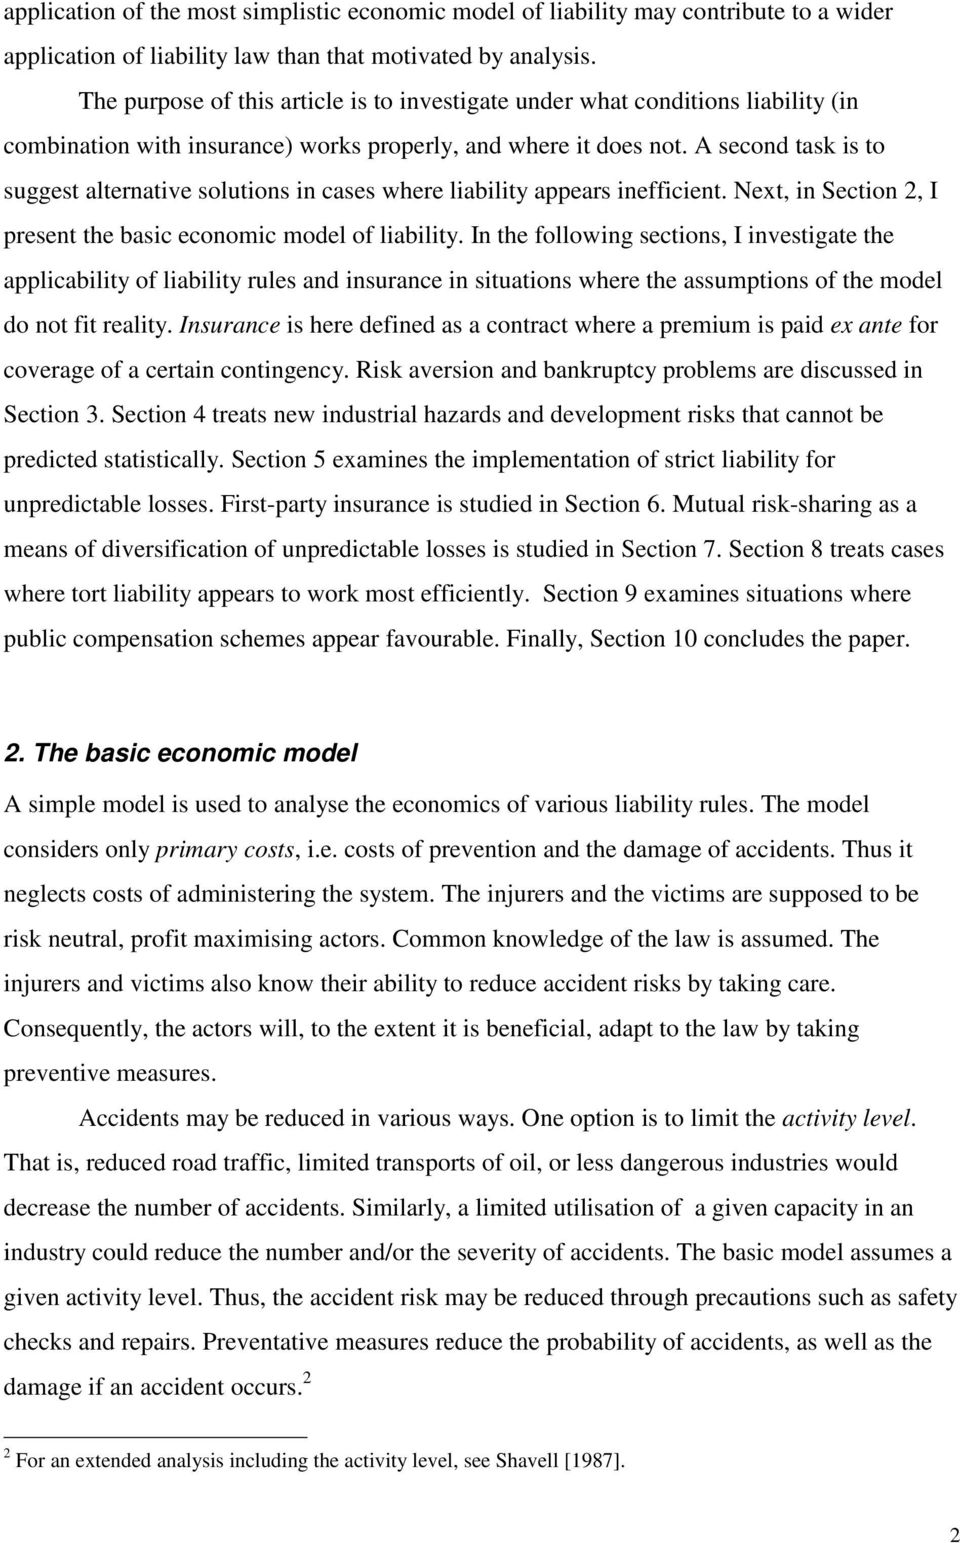 A second task is to suggest alternative solutions in cases where liability appears inefficient. Next, in Section 2, I present the basic economic model of liability.